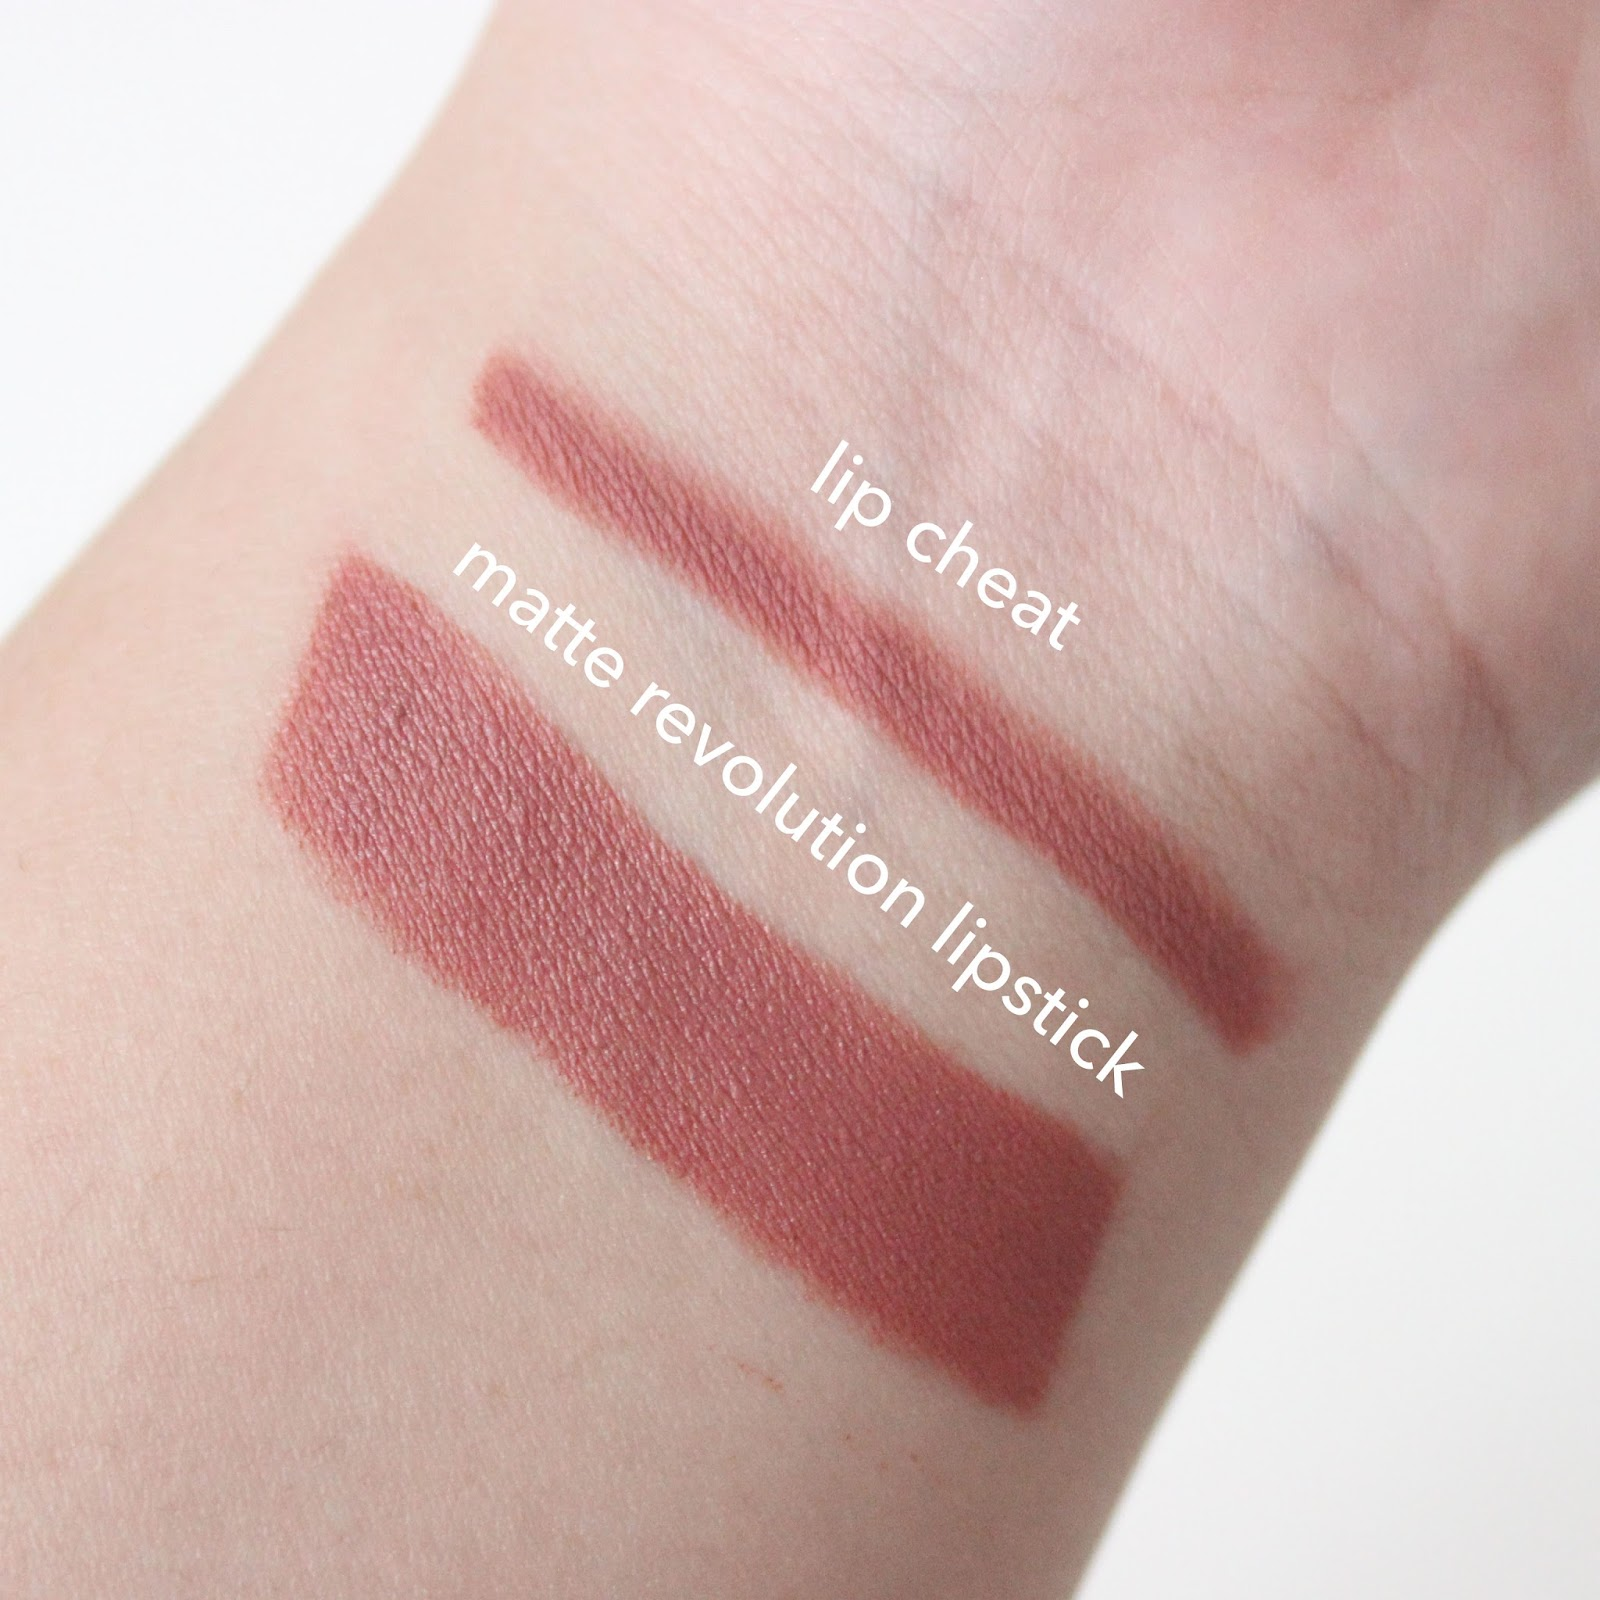 revolution lip talk matte pillow reviews swatches cheat lipstick product charlotte tilbury photos